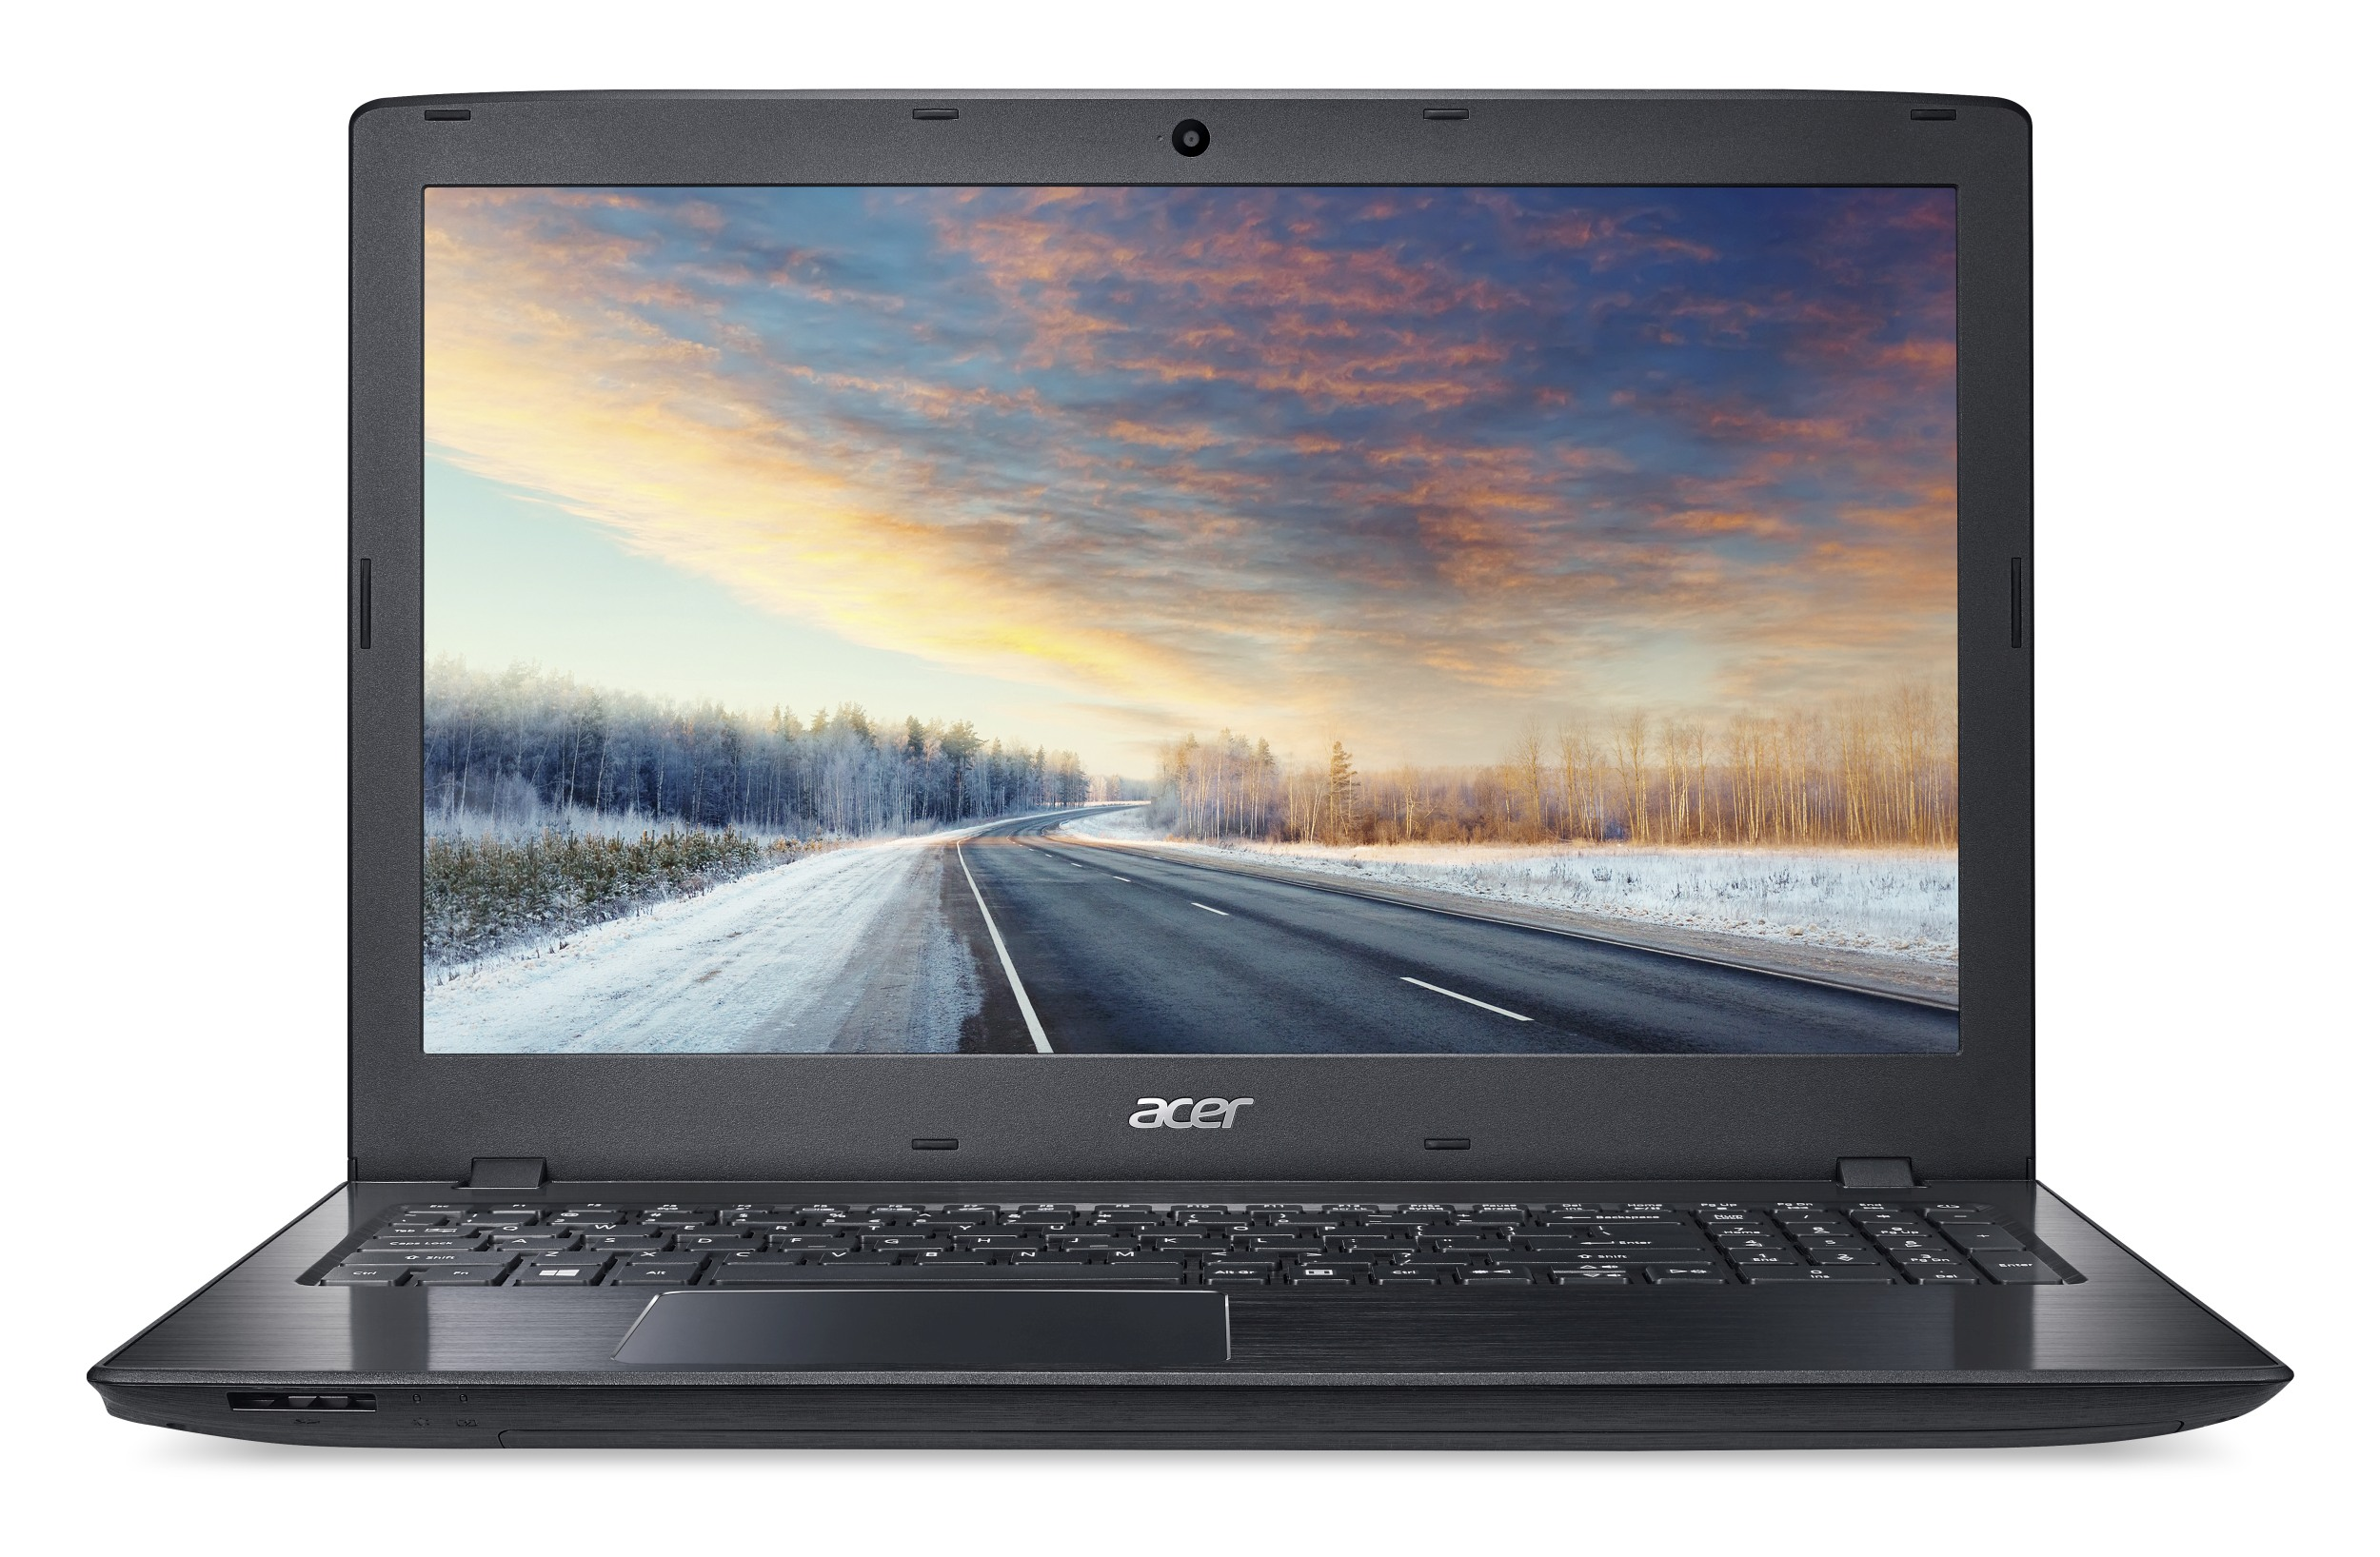 "AcerTravelMate P259-G2-M-38M2 i3-7100U/4GB+N/500GB 7200ot.+N/DVDRW/HD Graphics/15.6"" FHD matný LED/BT/W10 Pro/Black"